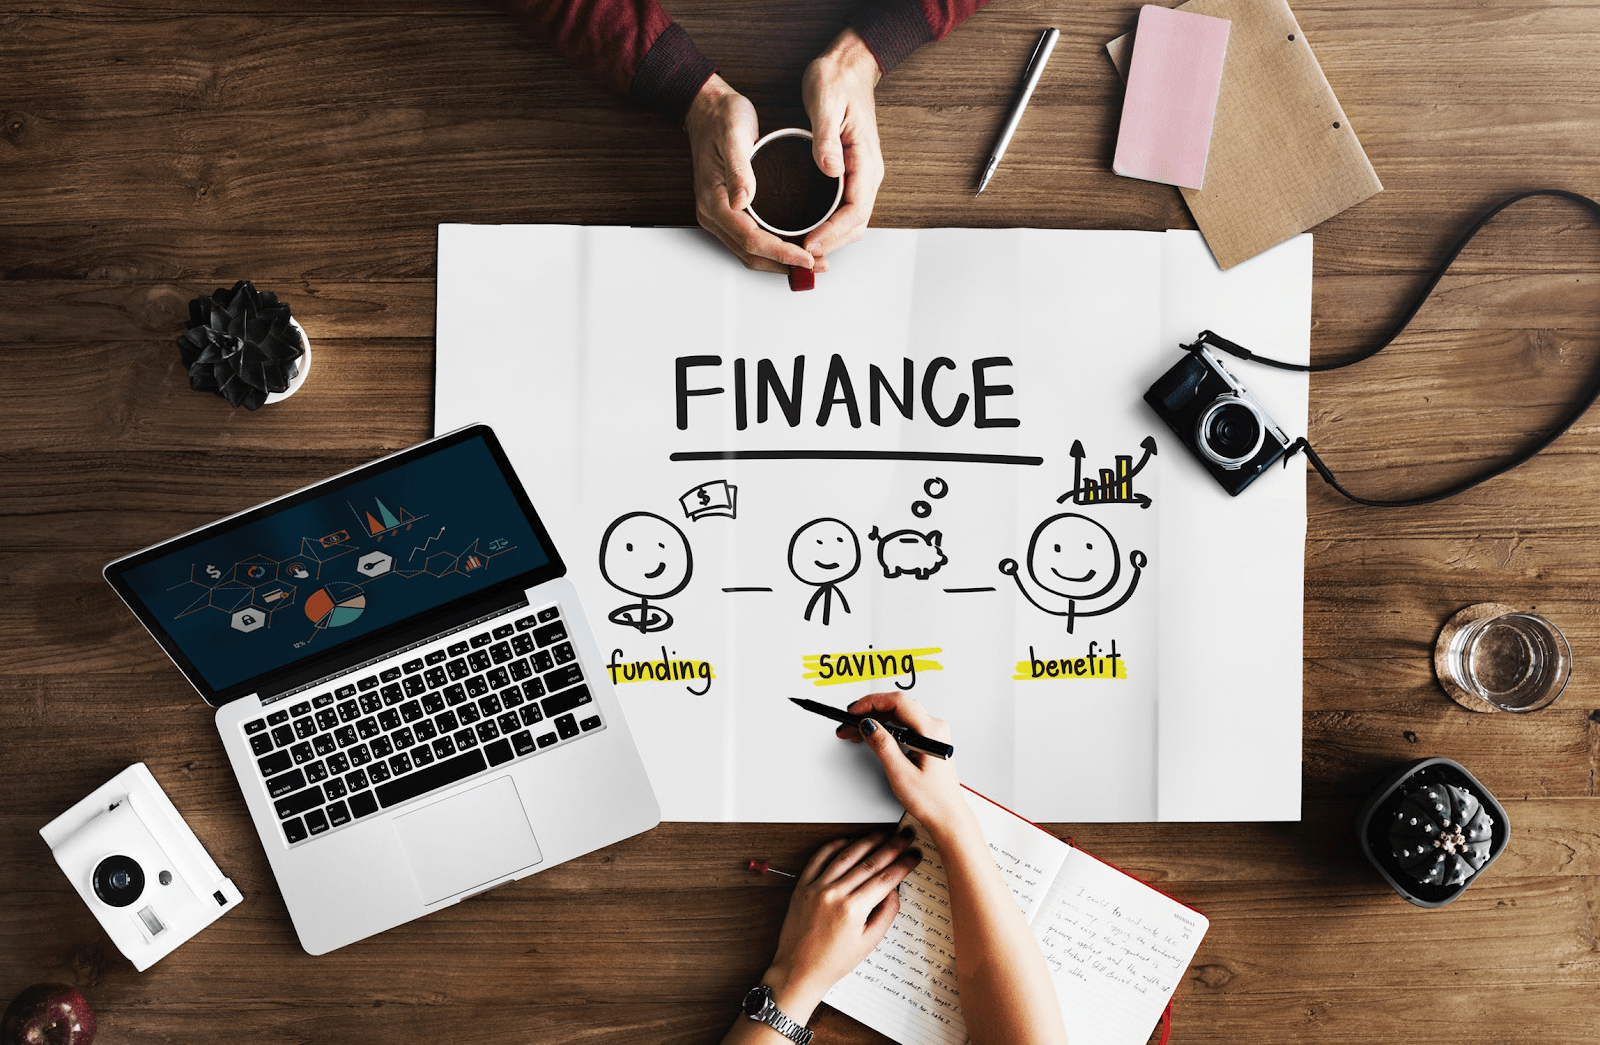 Financial Wellness At Workplaces: Why It's Critical